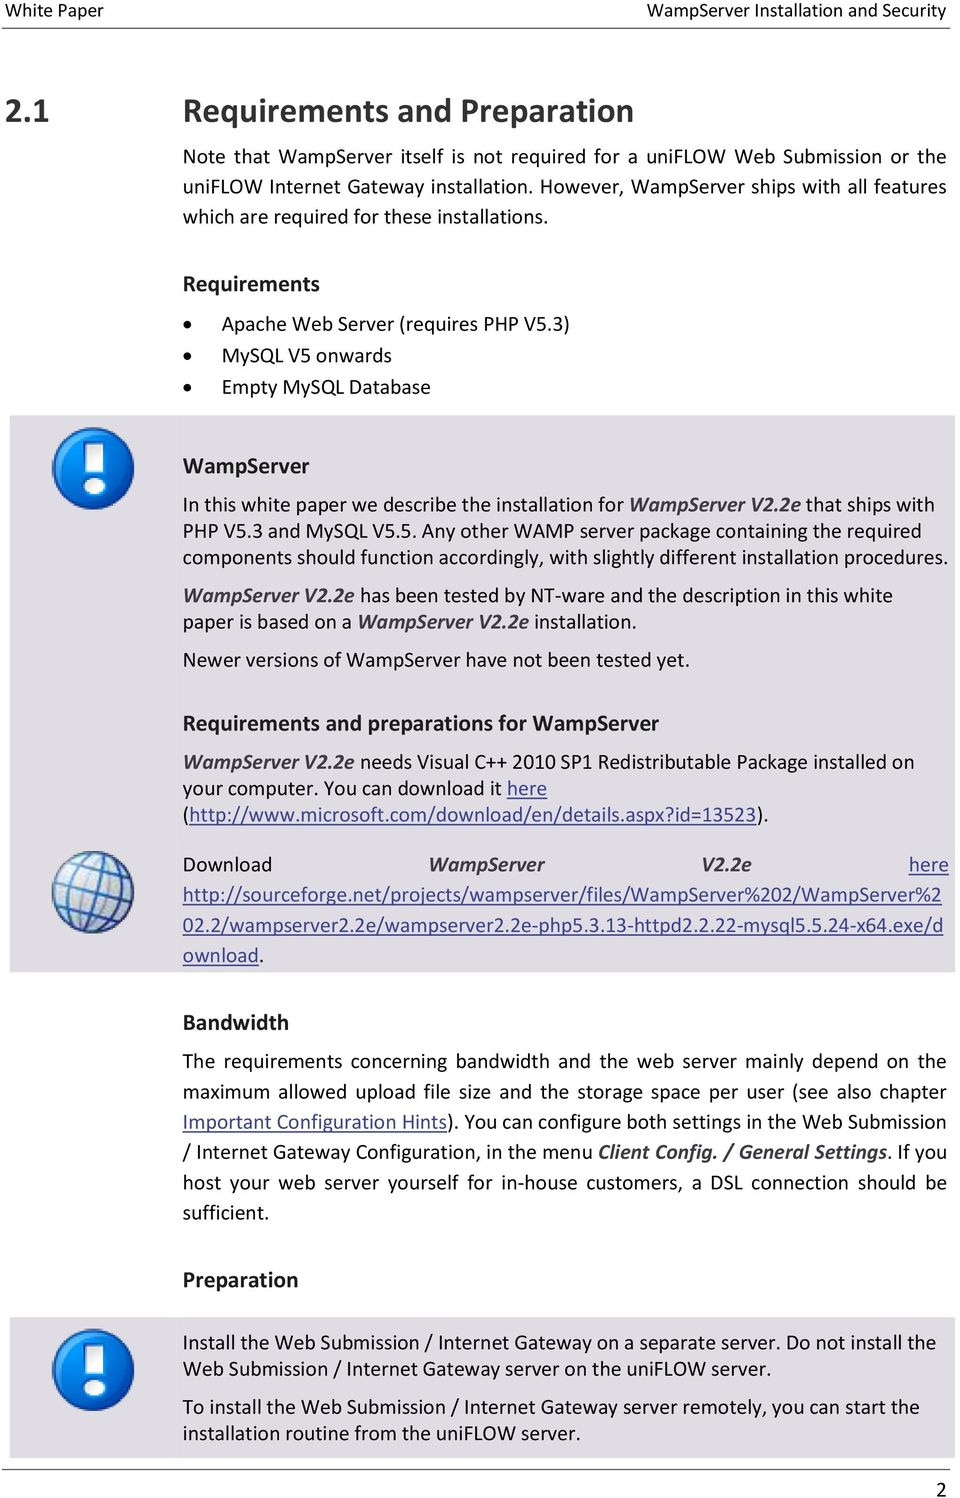 White Paper  // WampServer Installation and Security  Version Sep